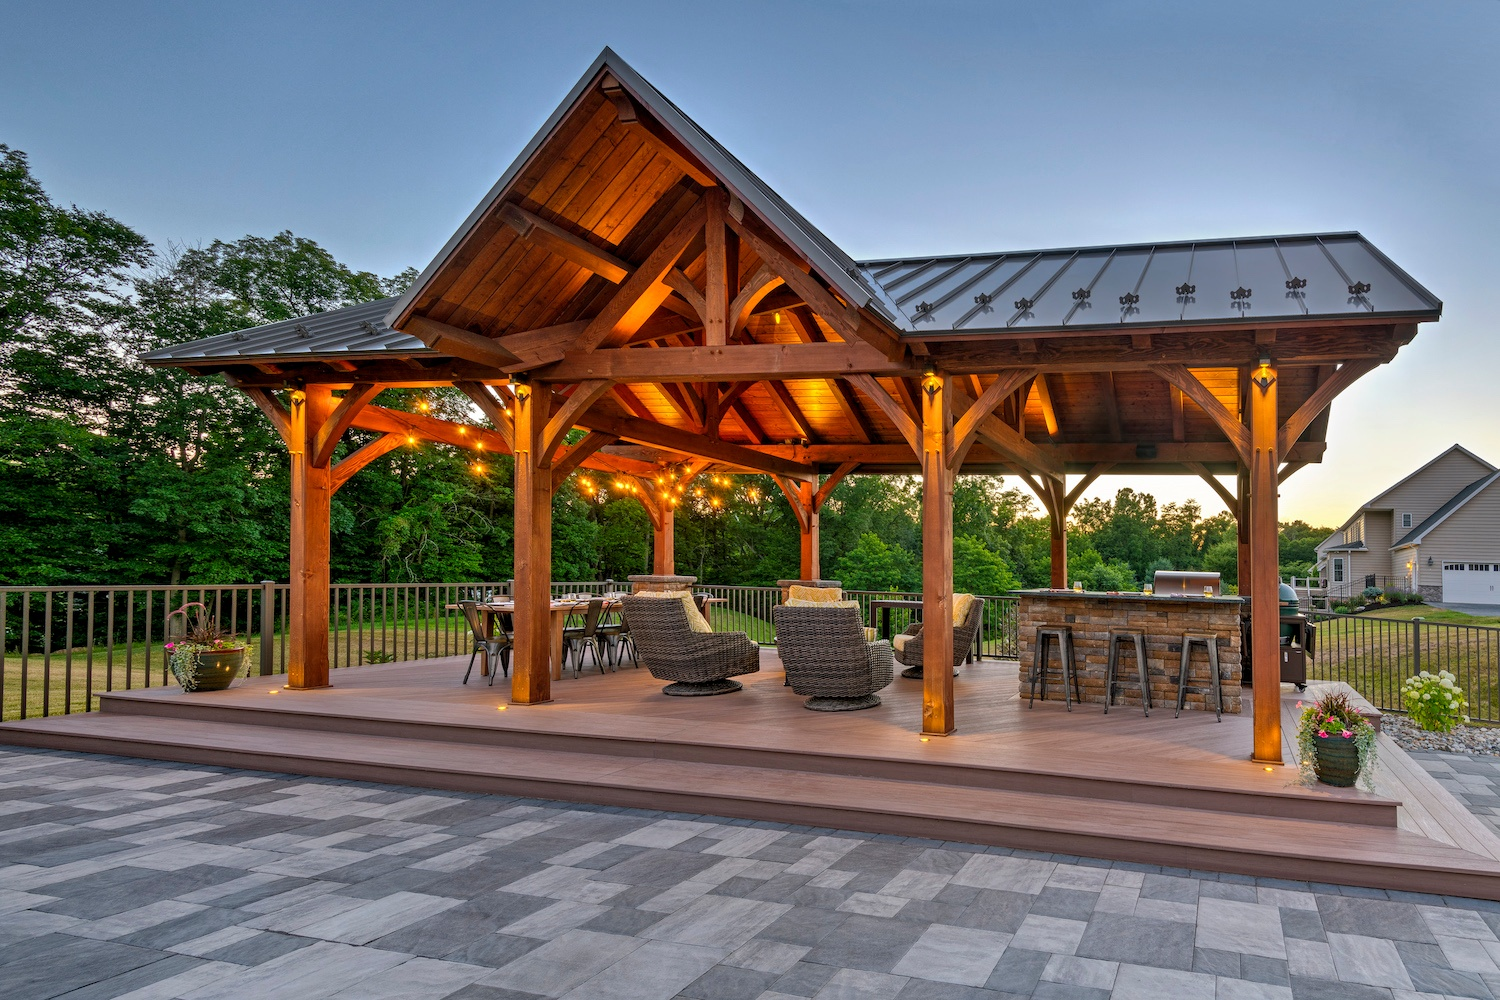 patio-pavilion-fence-outdoor-kitchen-1